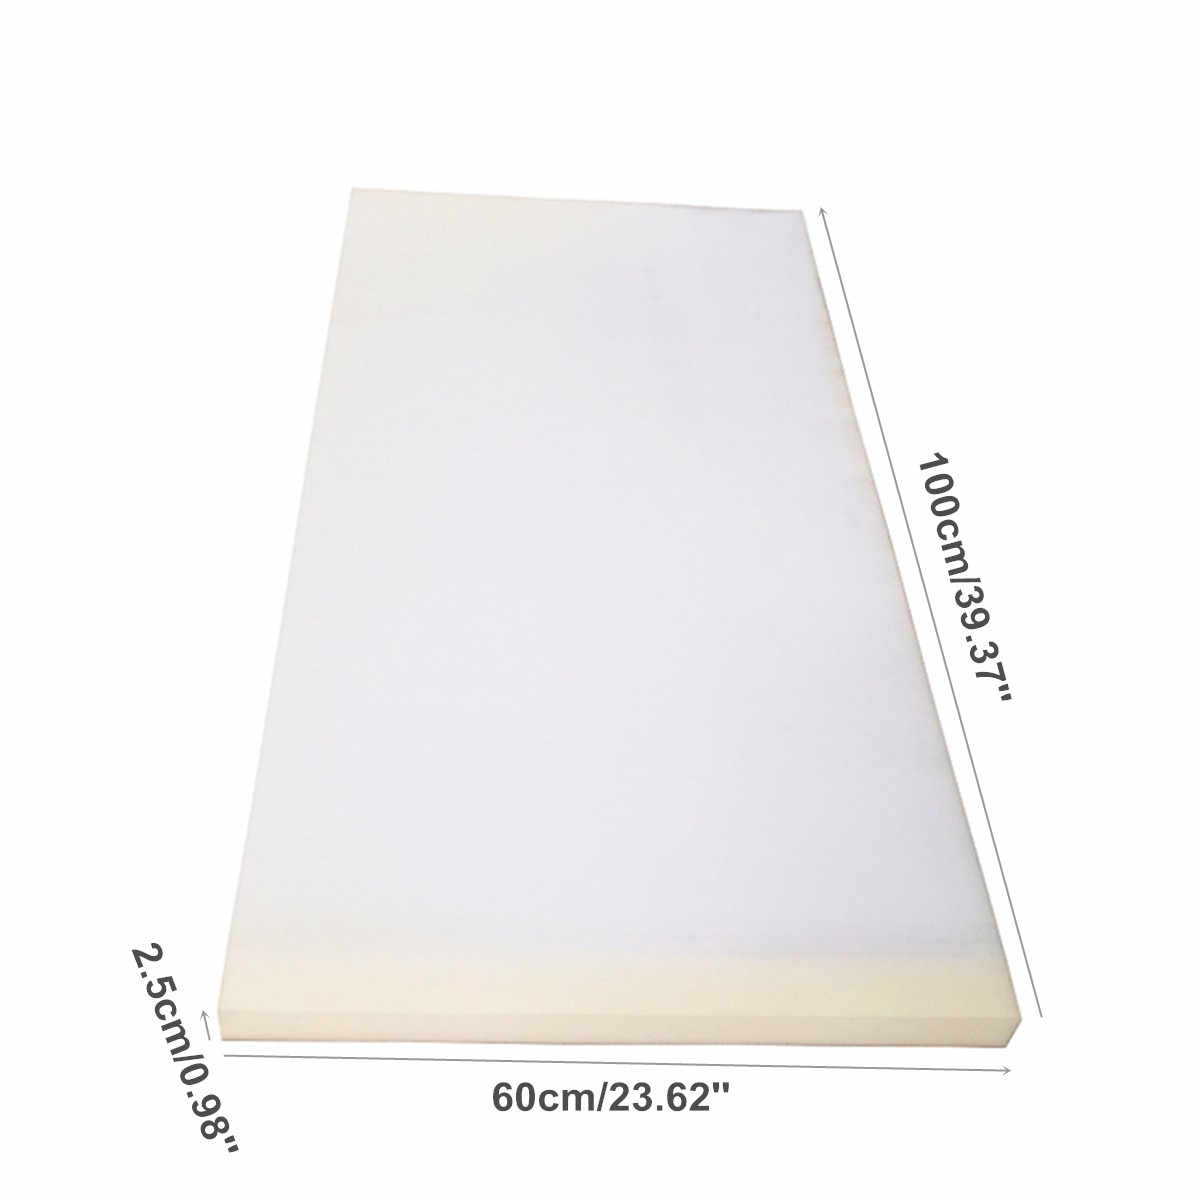 40x24x1 Inch High Density Foam Seat Cushion Replacement Upholstery